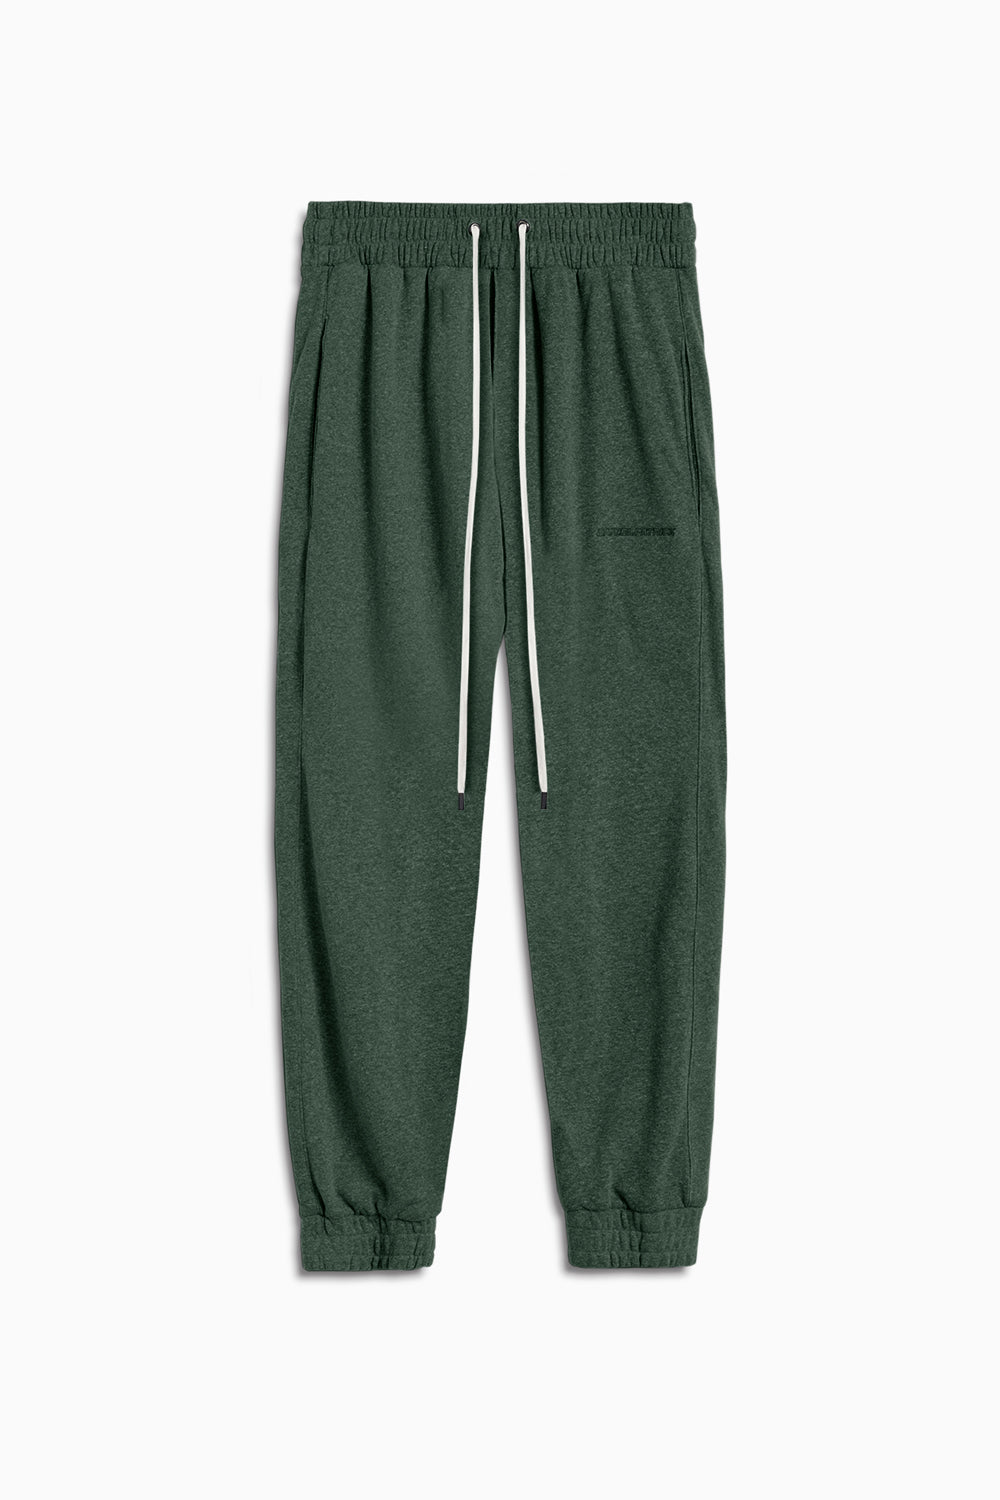 loop terry roaming sweatpants / hunter green